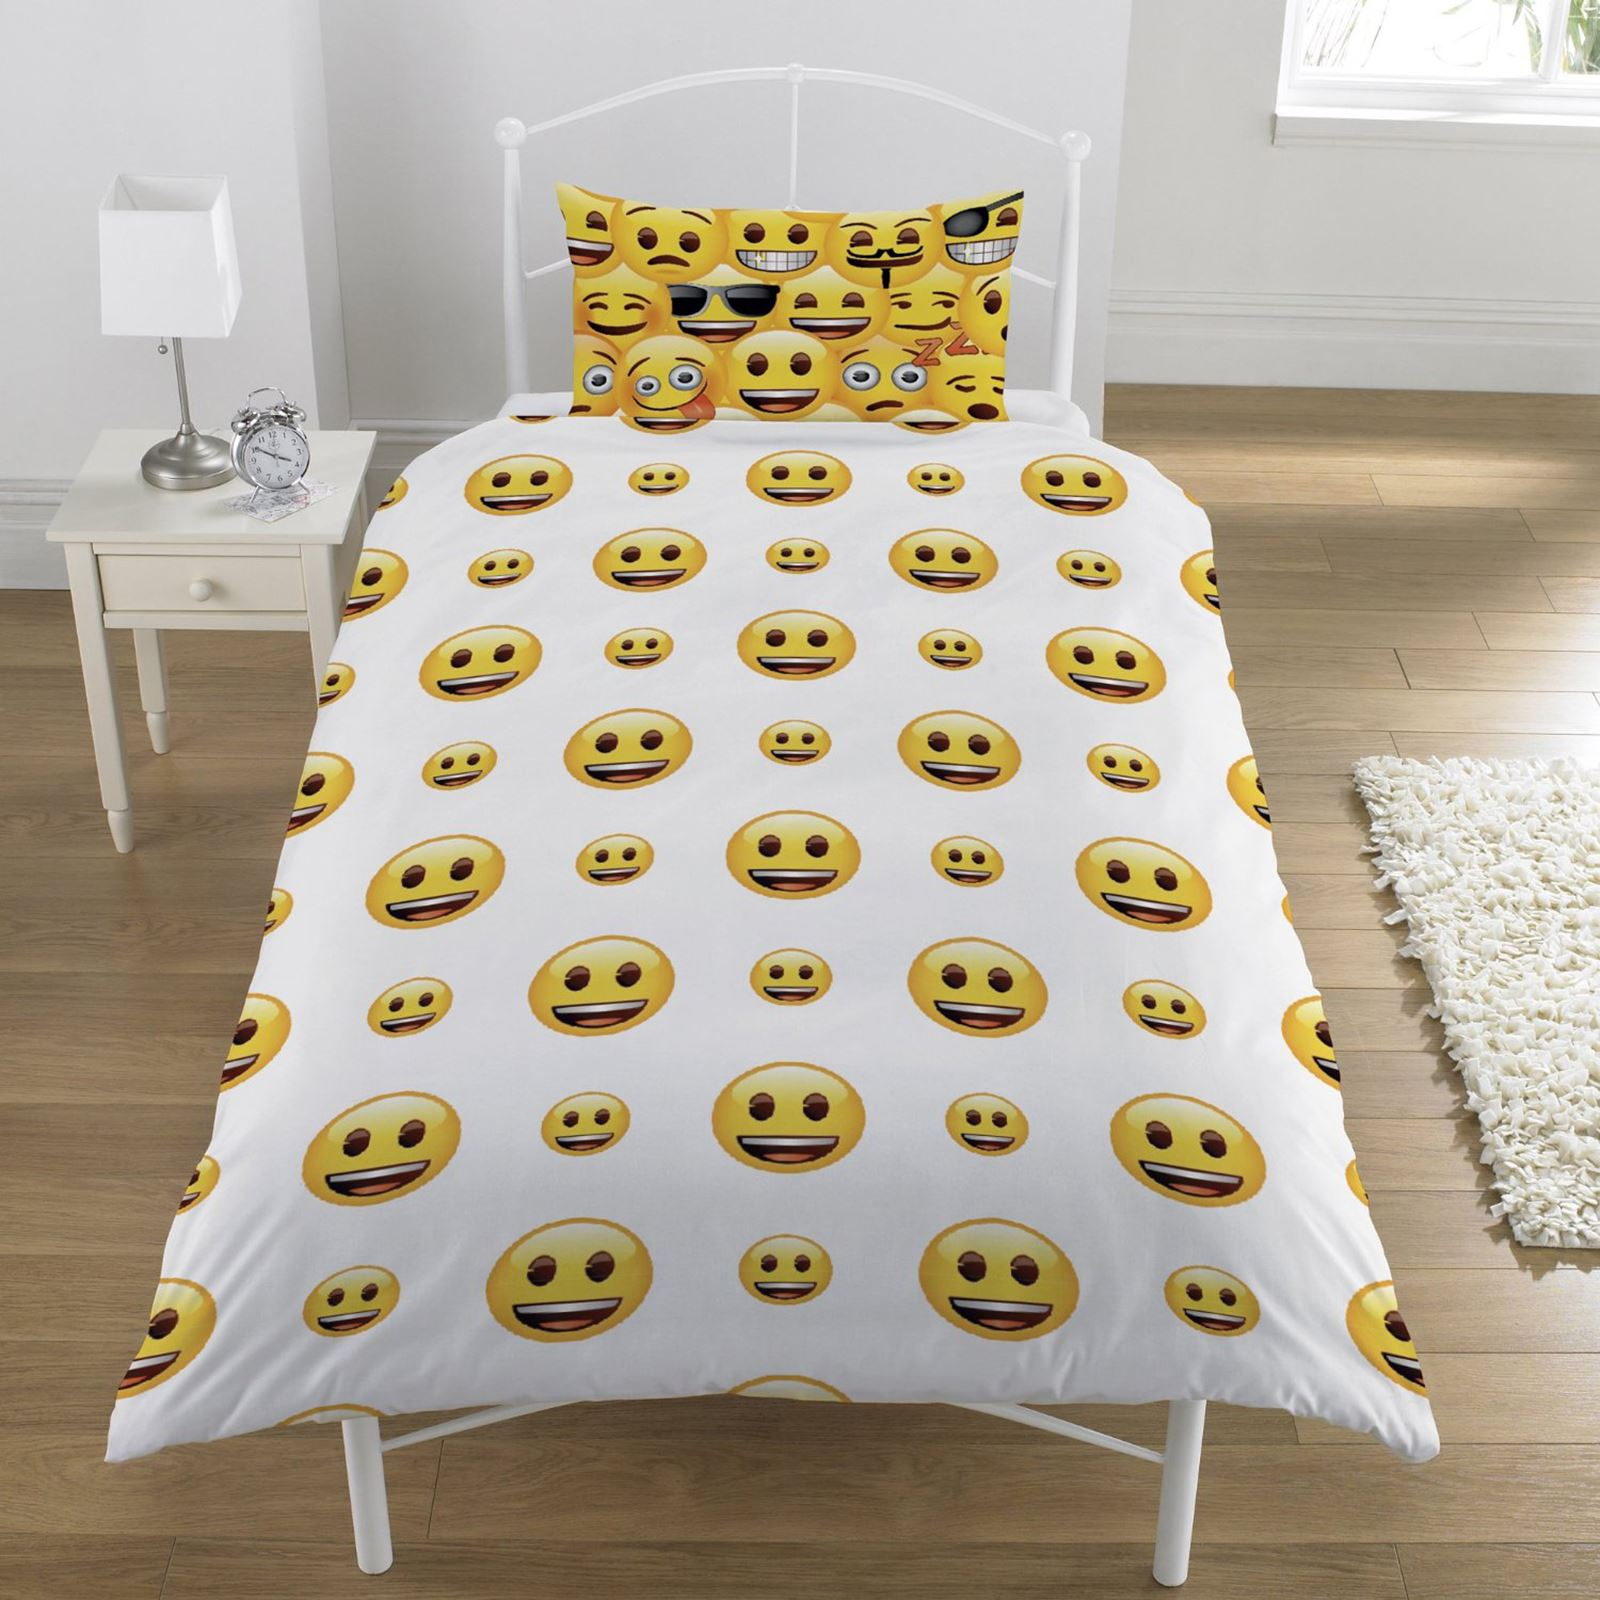 Good EMOJI SMILEY FACES DUVET COVER SET AVAILABLE SINGLE U0026 DOUBLE BEDDING | EBay